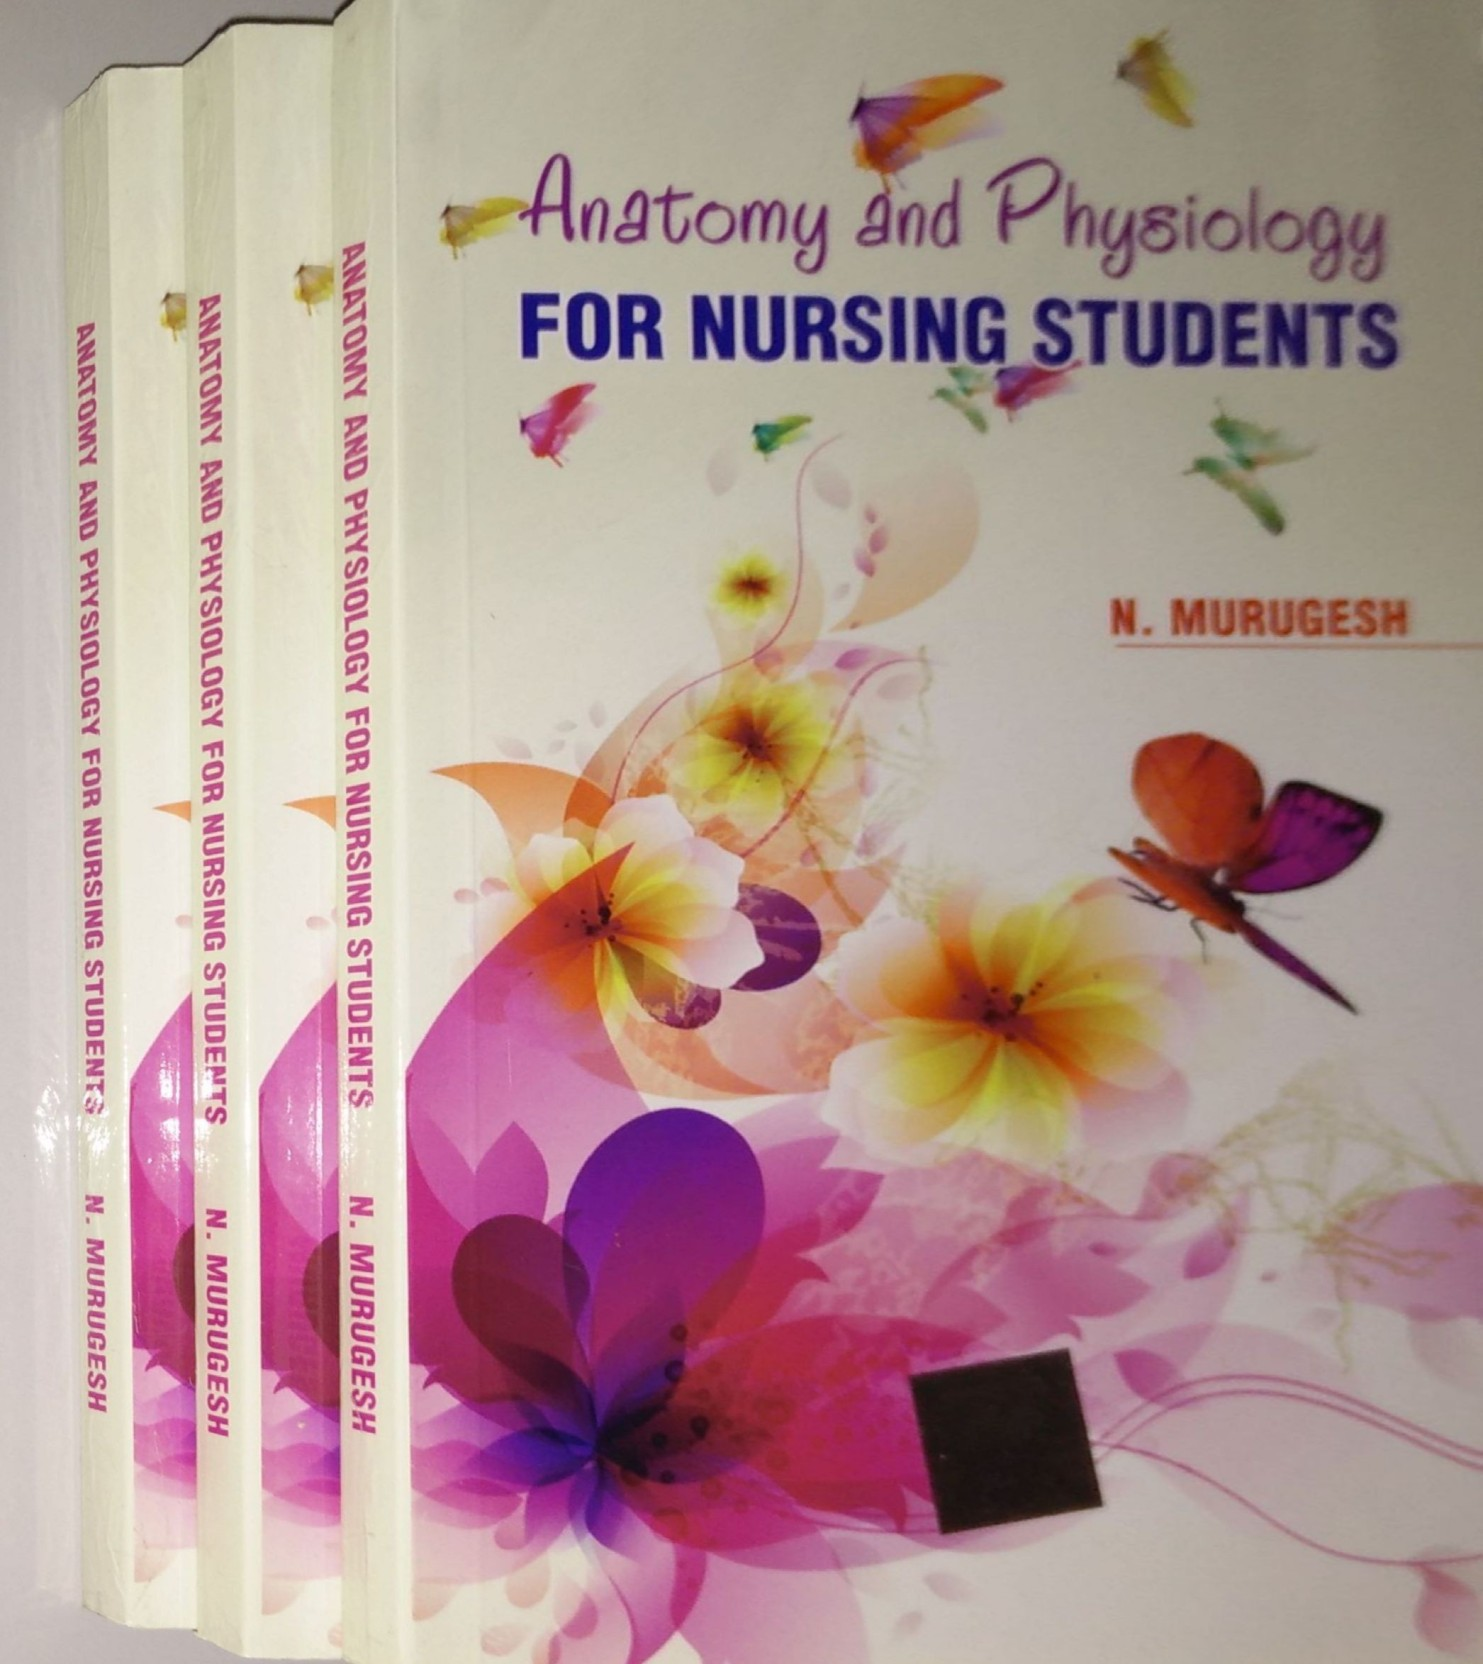 Wunderbar Anatomy And Physiology For Nursing Students Fotos ...